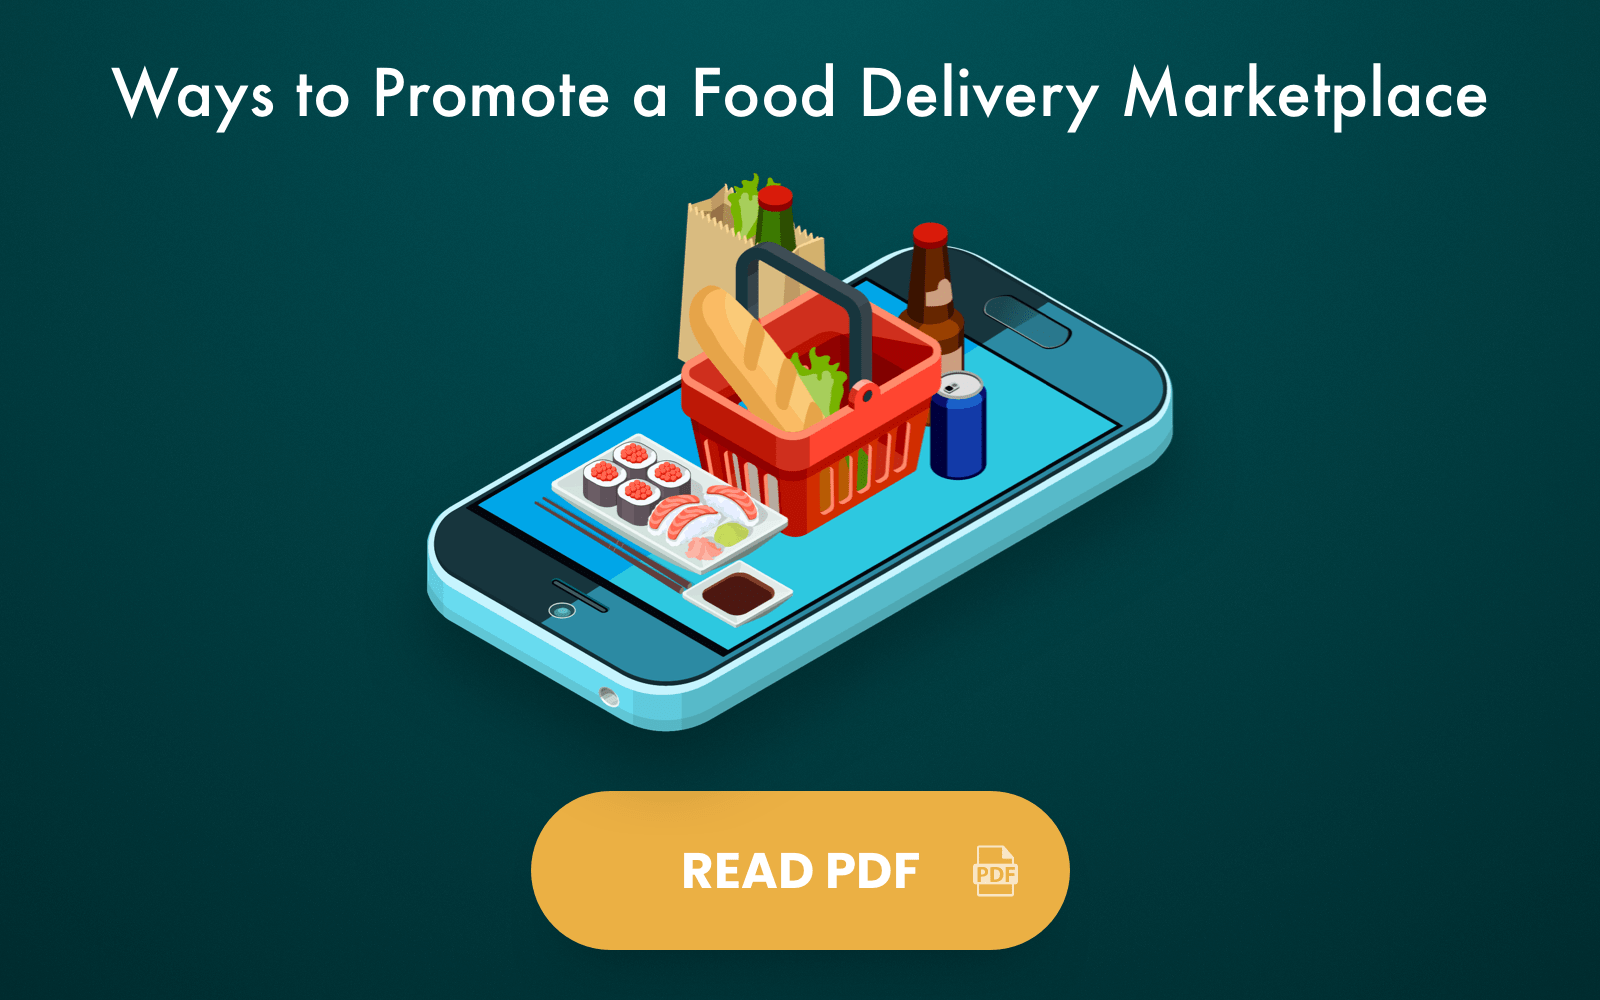 Ways to promote a food delivery marketplace